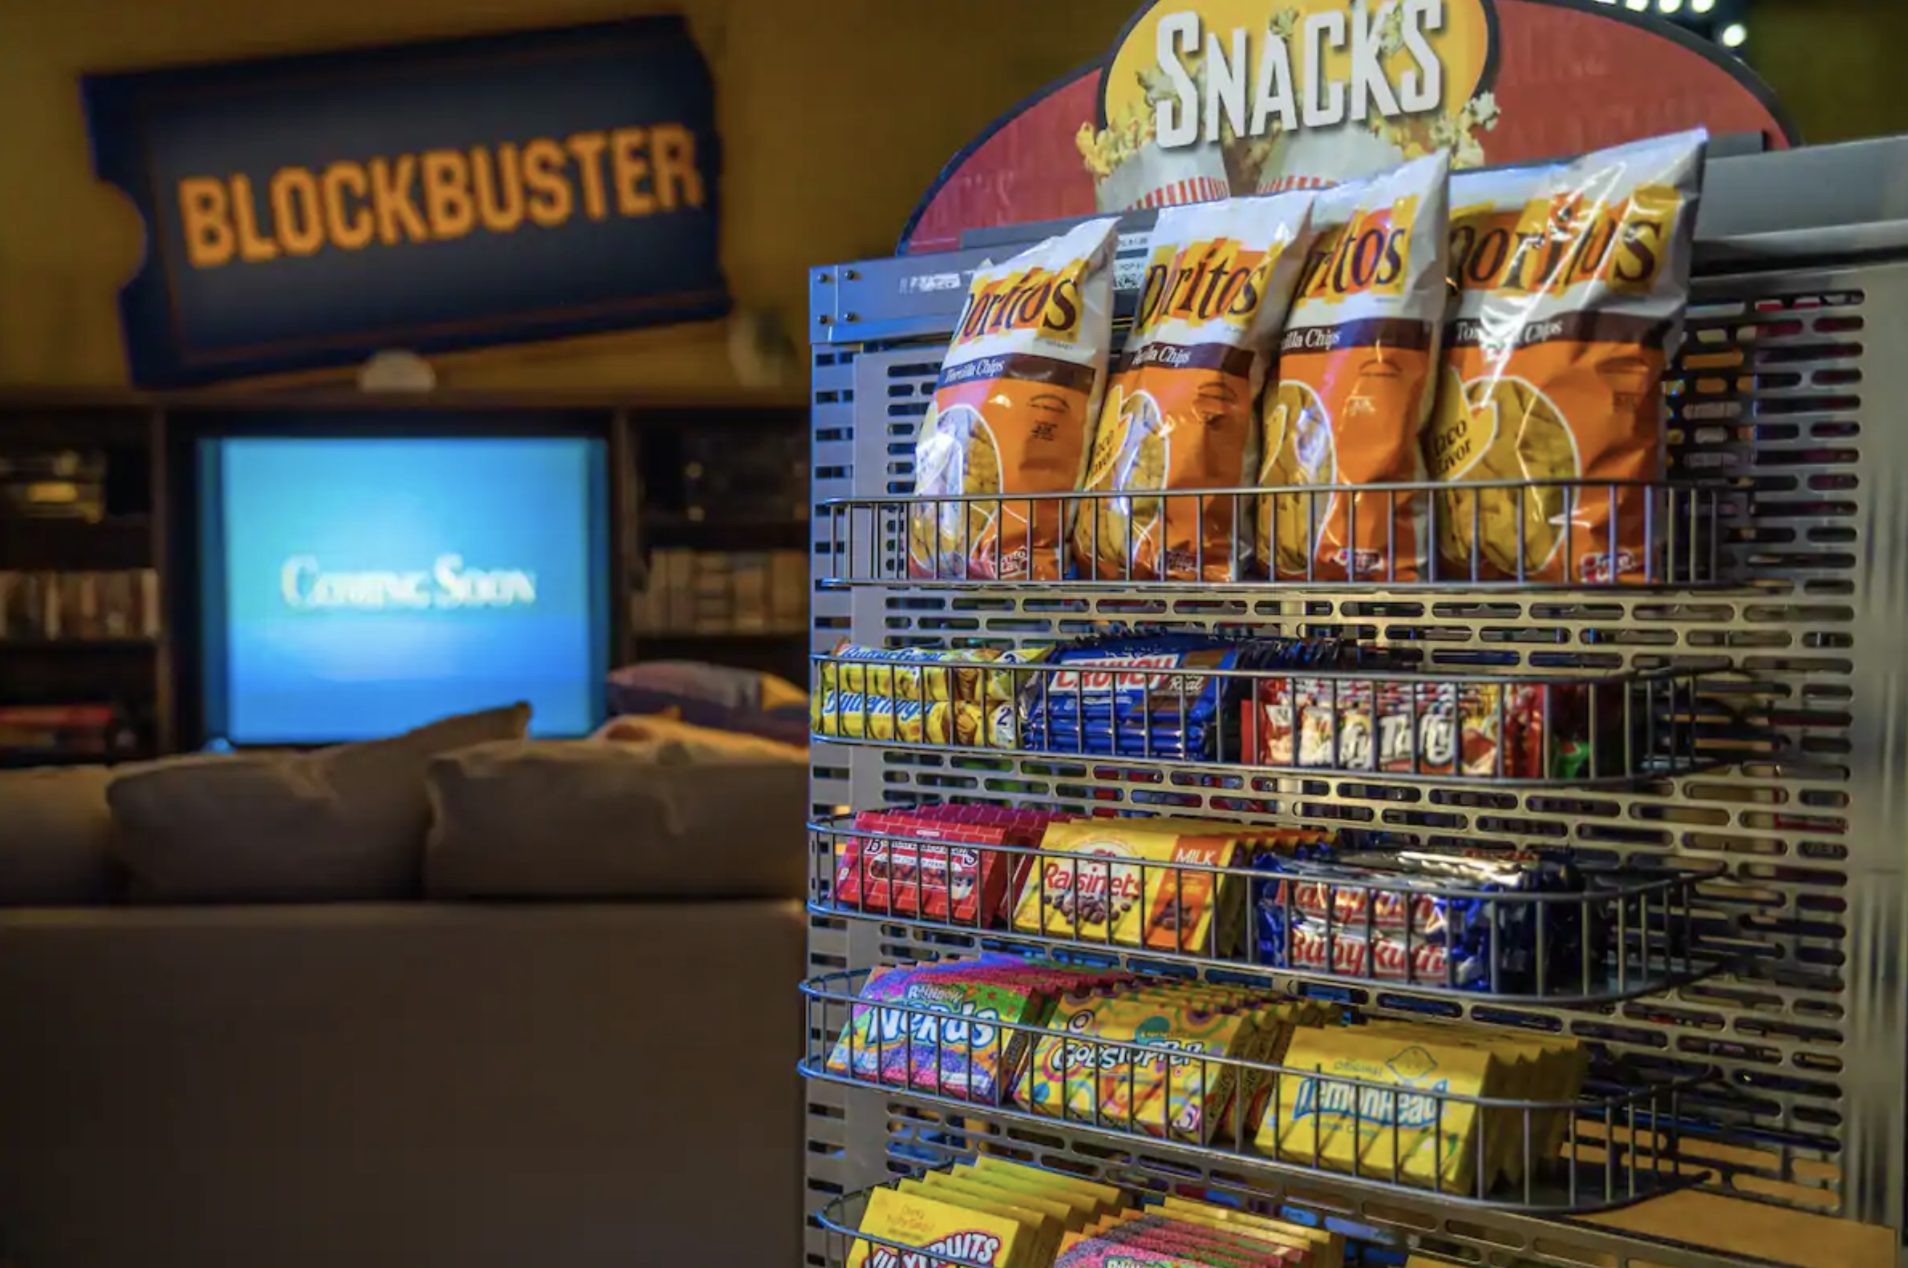 A rack filled with snacks like candy and chips next to the couch